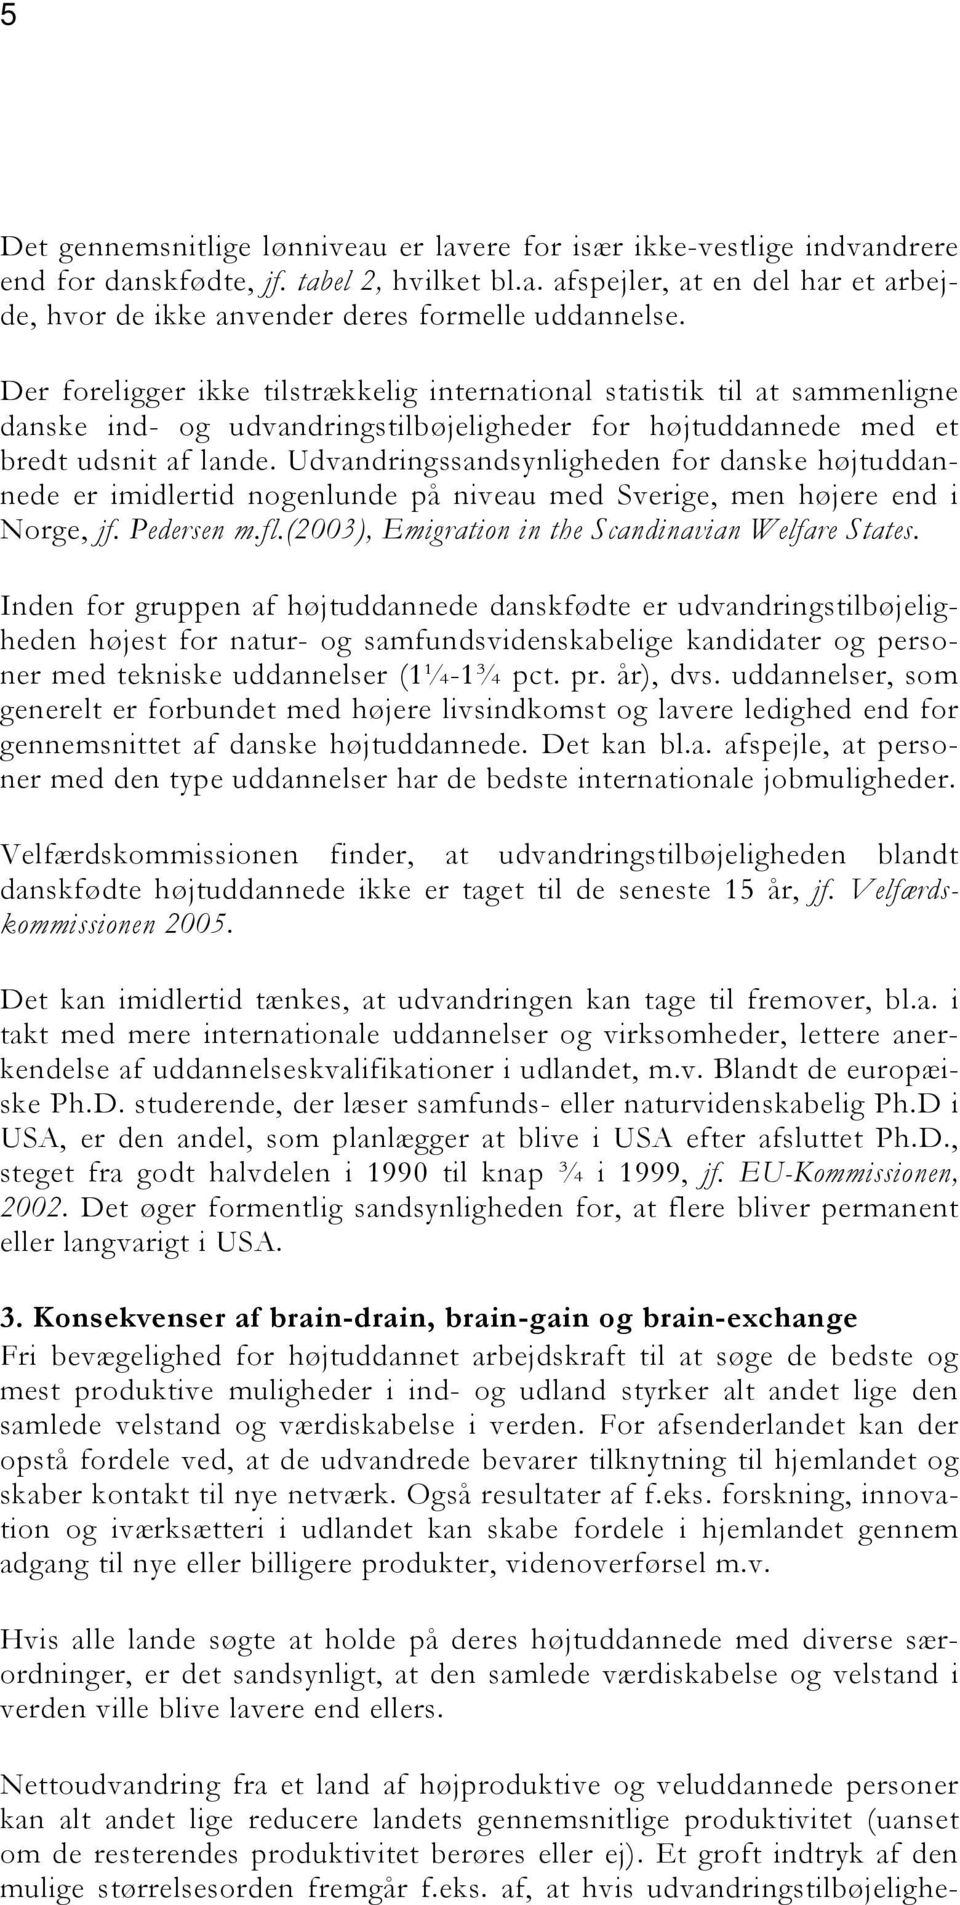 Udvandringssandsynligheden for danske højtuddannede er imidlertid nogenlunde på niveau med Sverige, men højere end i Norge, jf. Pedersen m.fl.(2003), Emigration in the Scandinavian Welfare States.